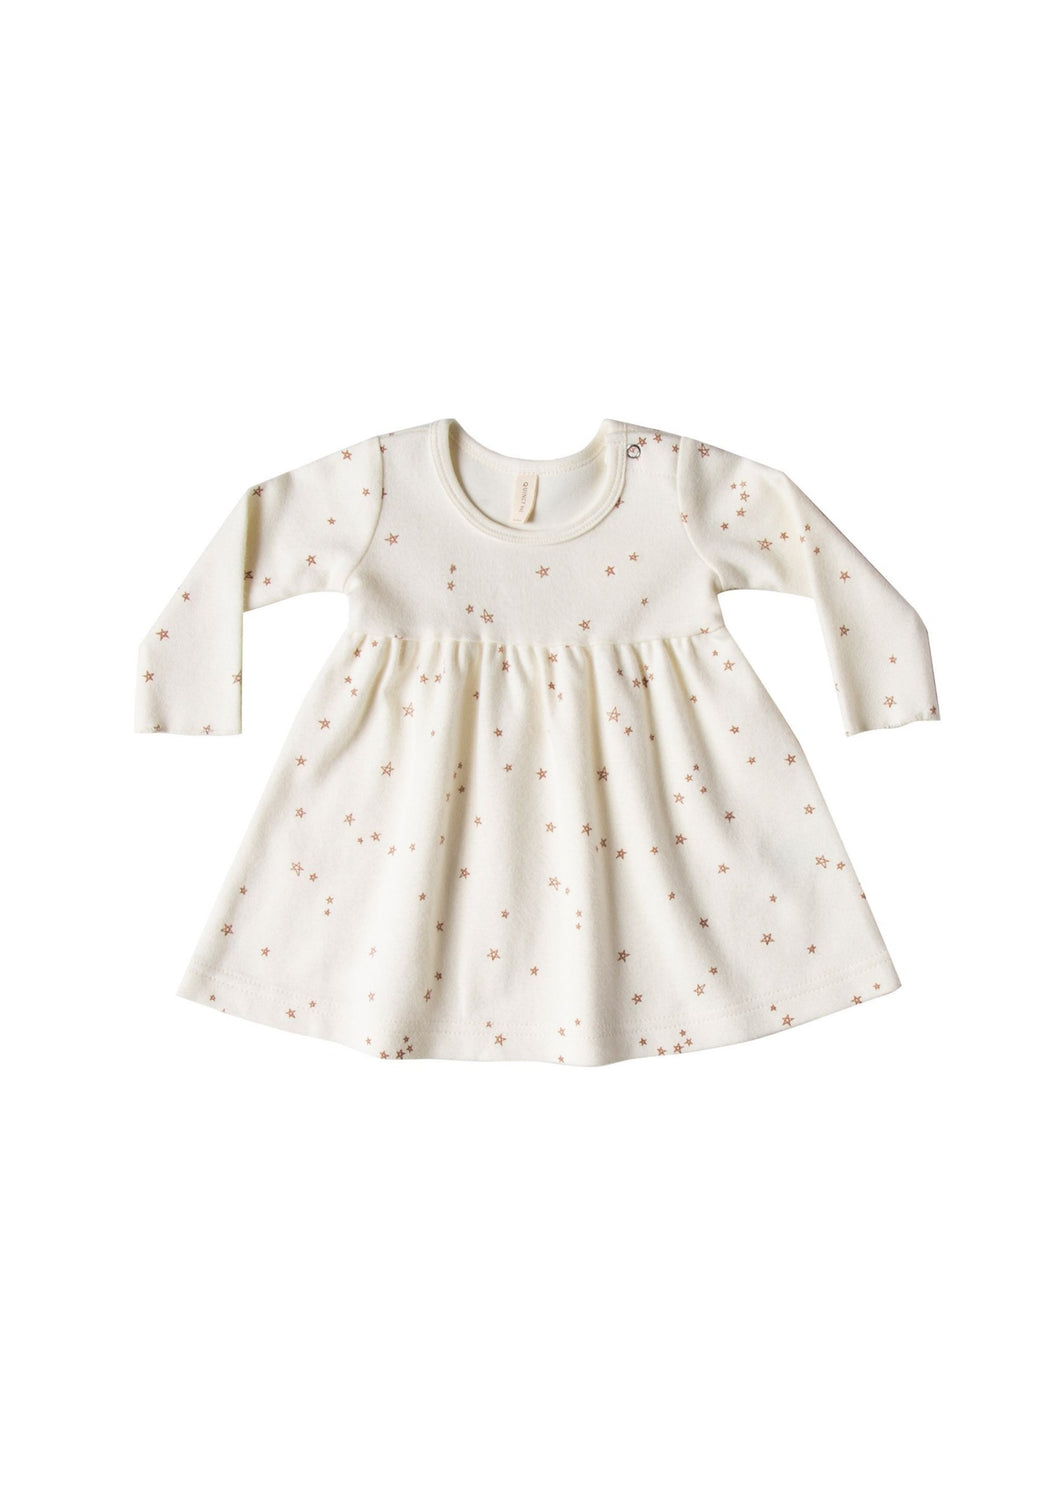 Quincy Mae | Longsleeve Baby Dress | Ivory